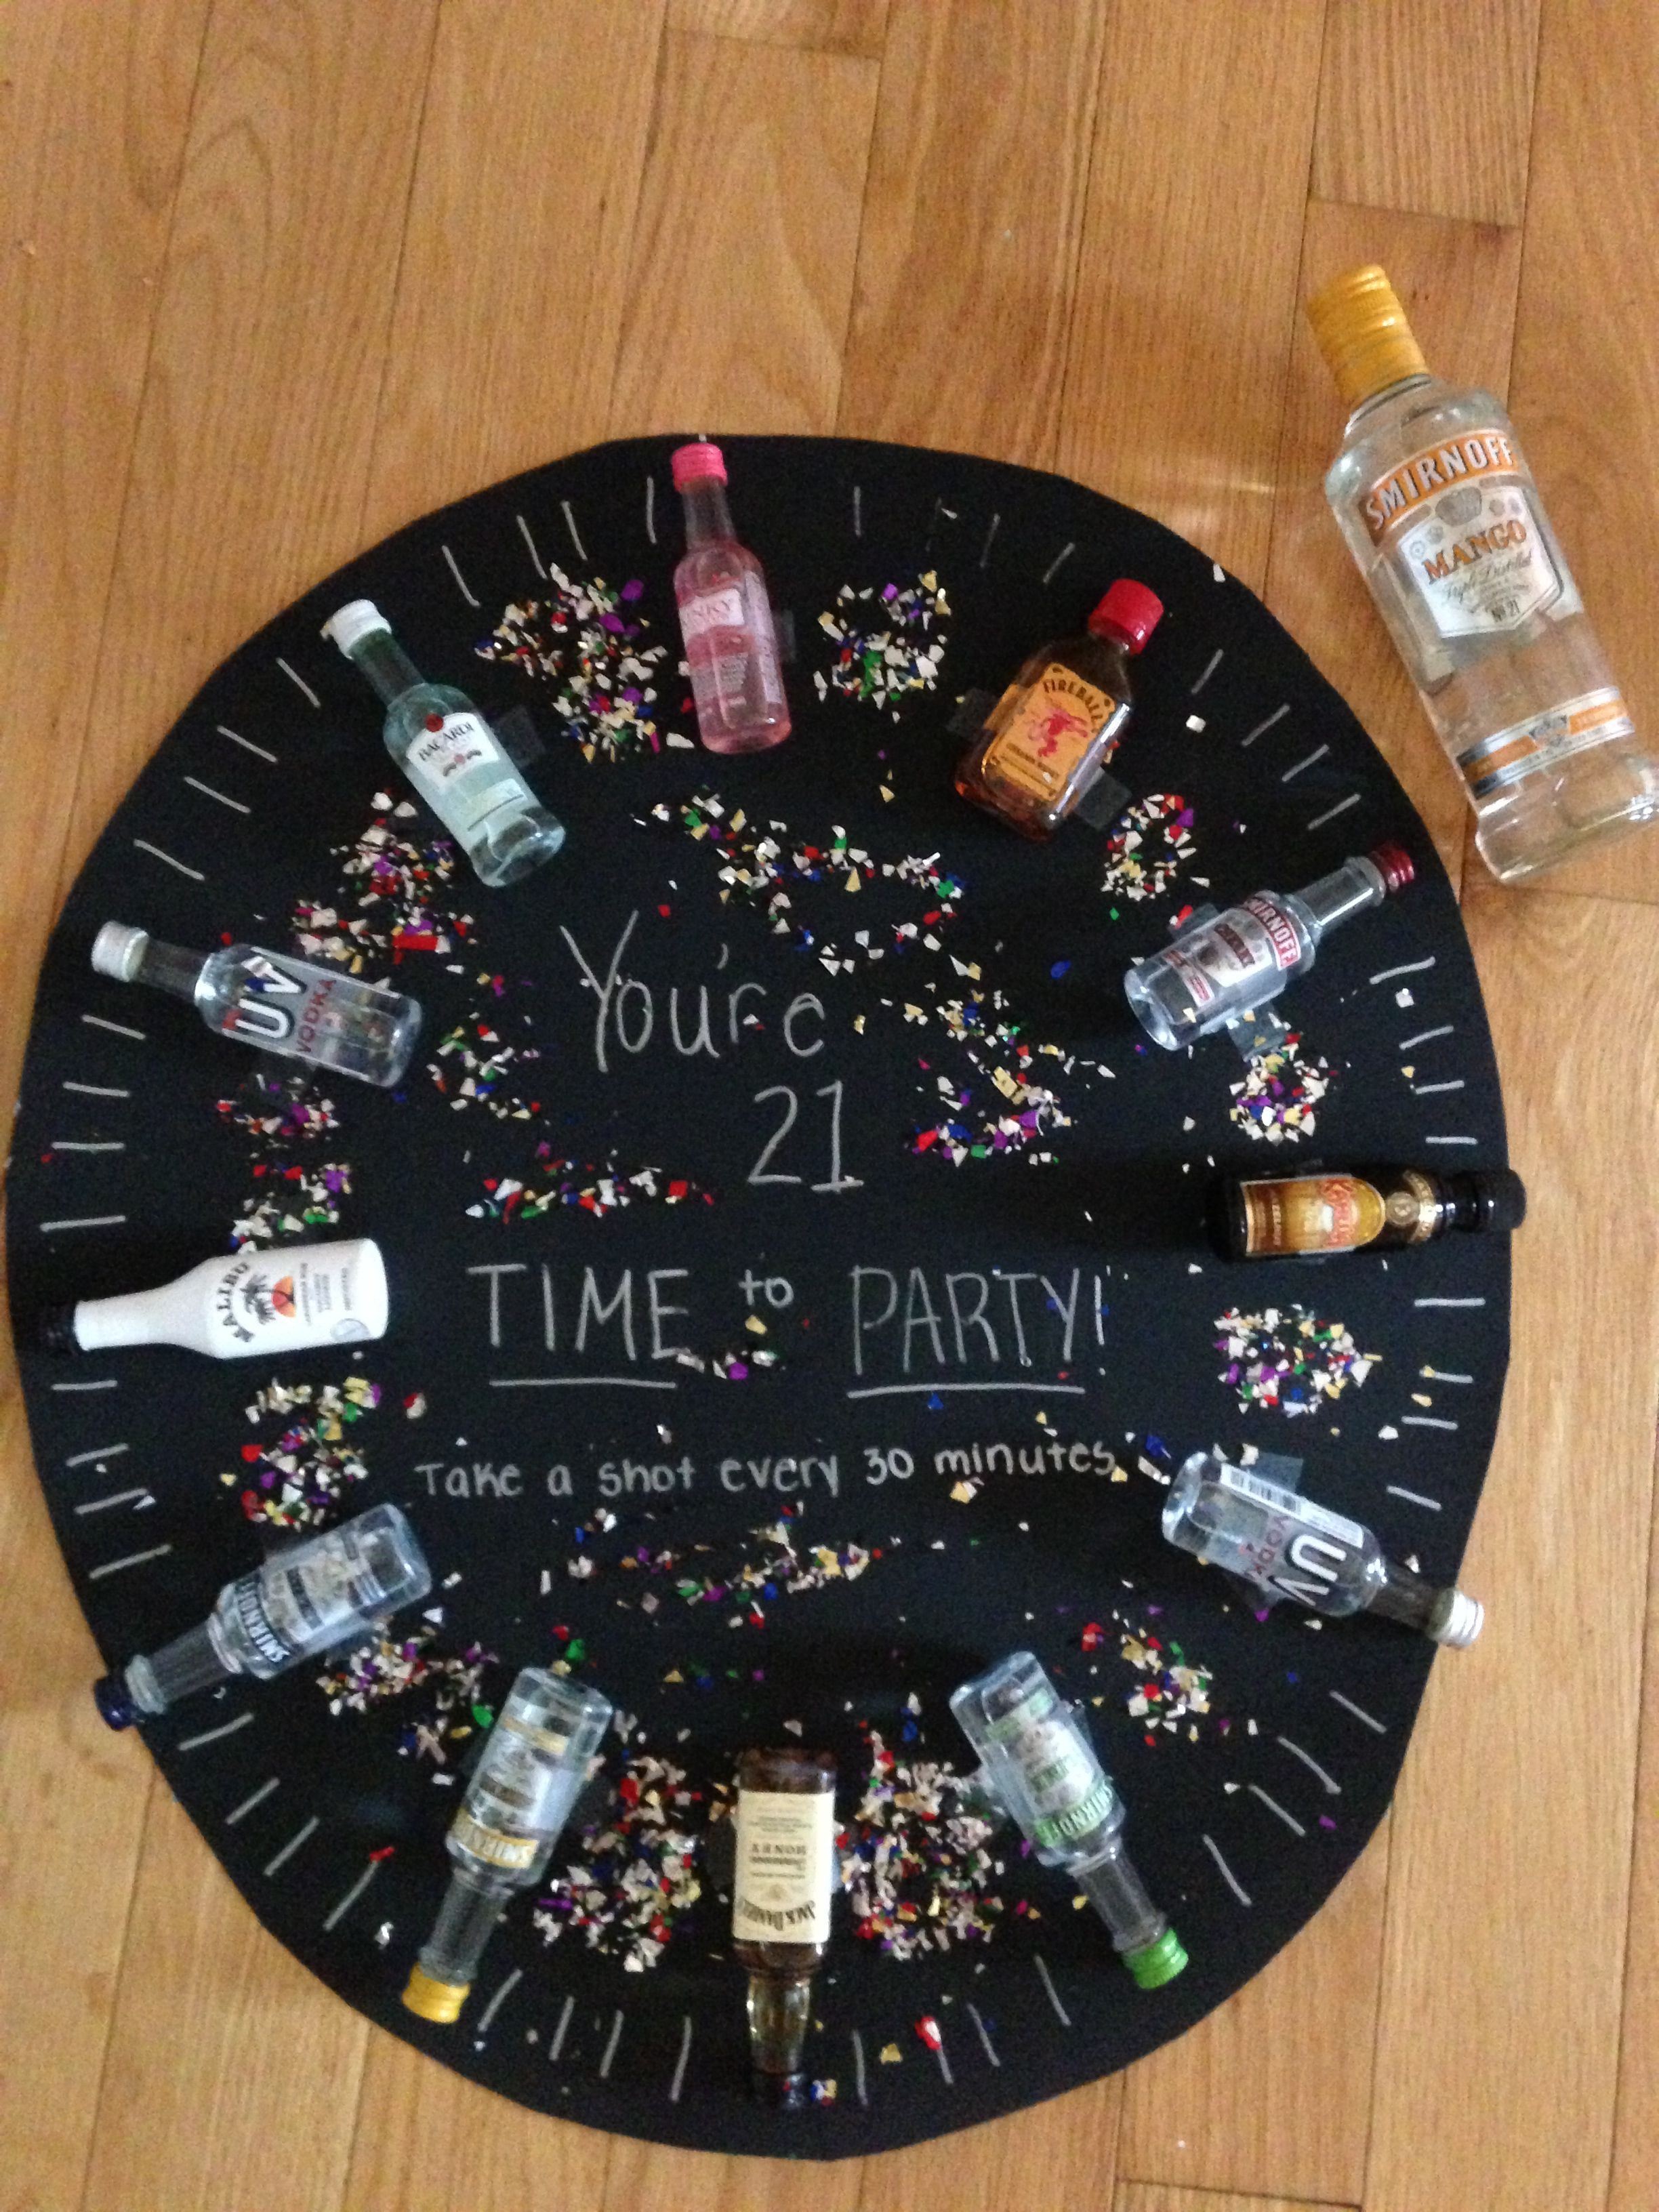 Time to party shot clock st birthday present for my omg  would live this also rh co pinterest